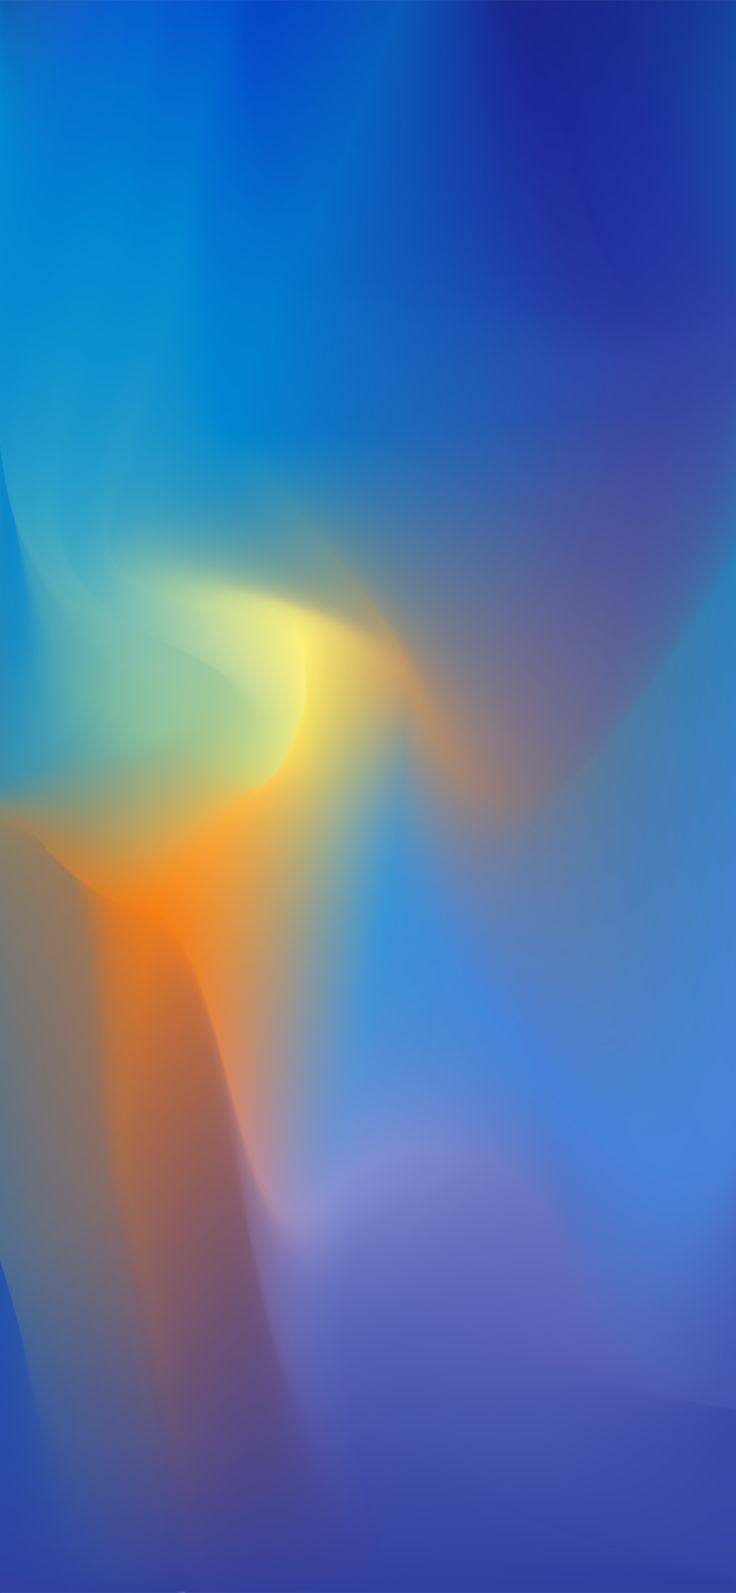 The iPhone X/Xs Wallpaper Thread - Page 66 - iPhone, iPad, iPod Forums at iMore....